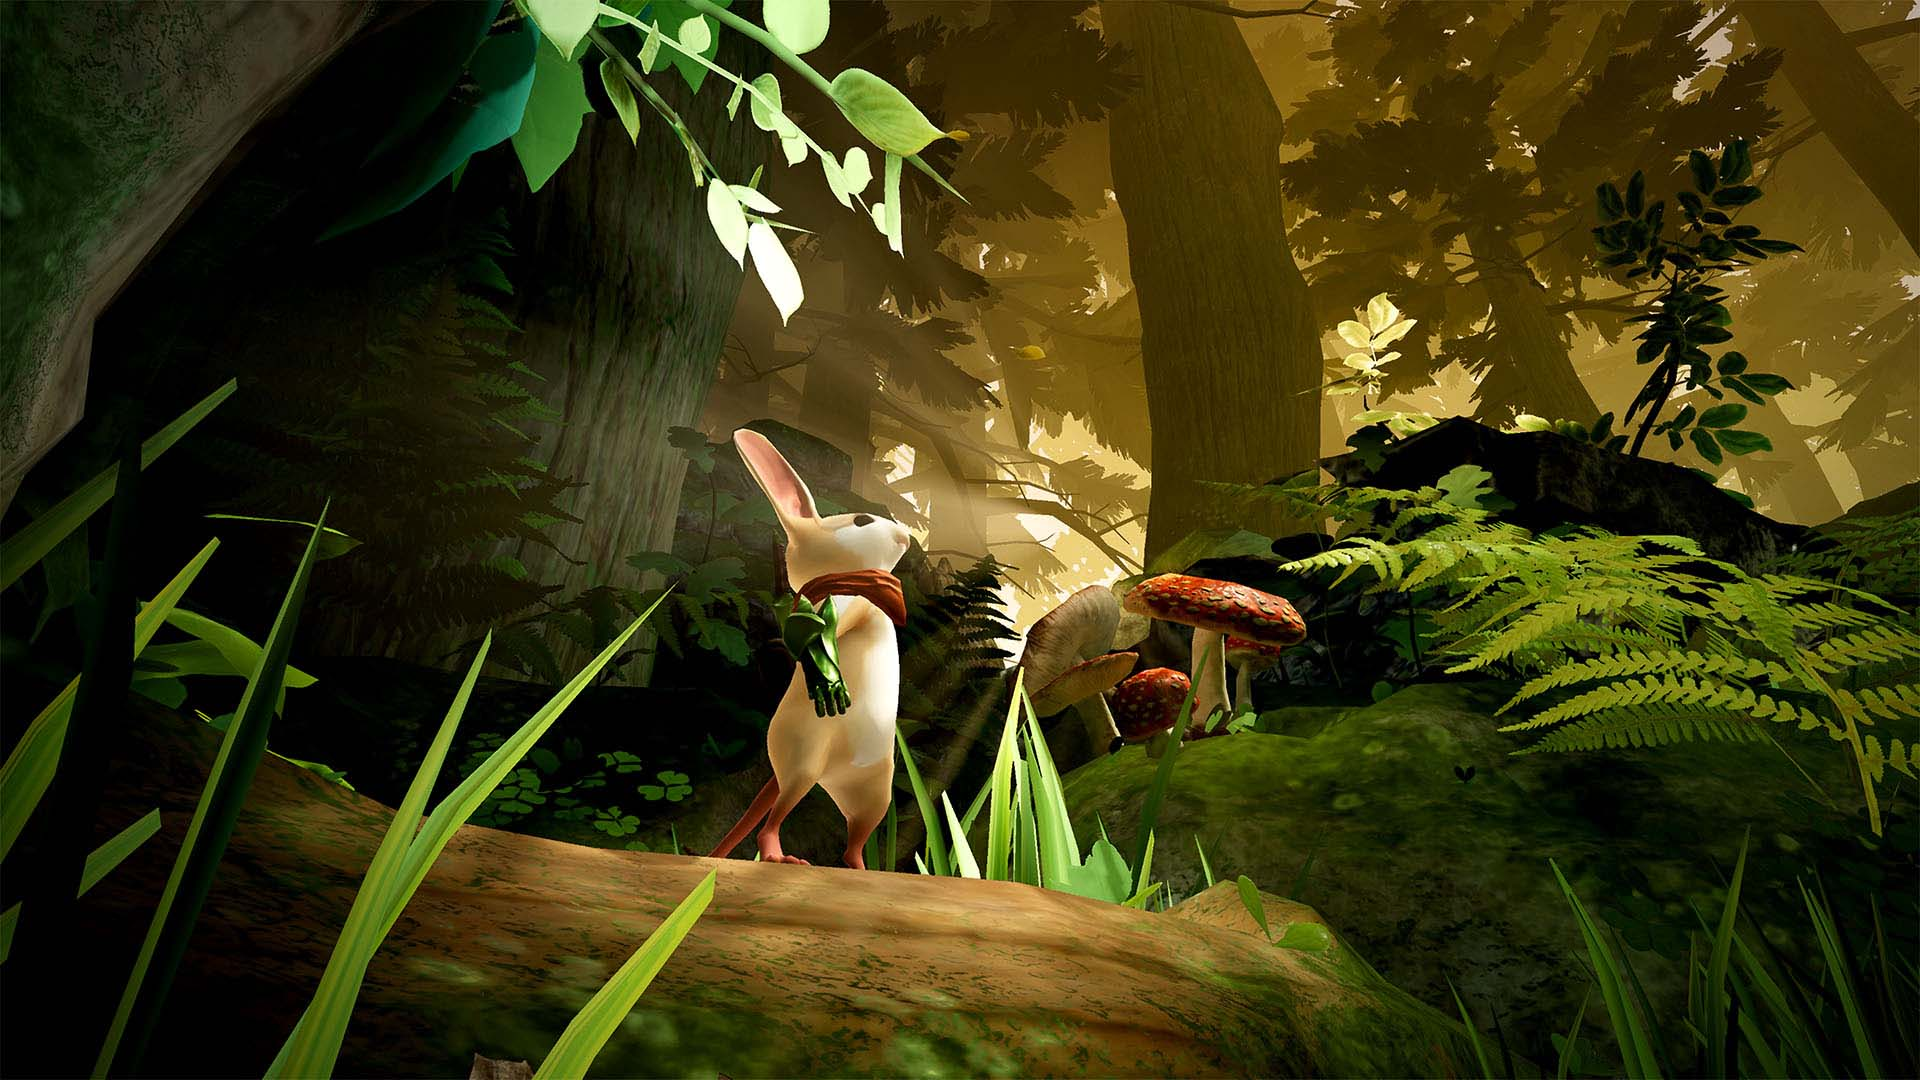 Moss review – the mouse that roared